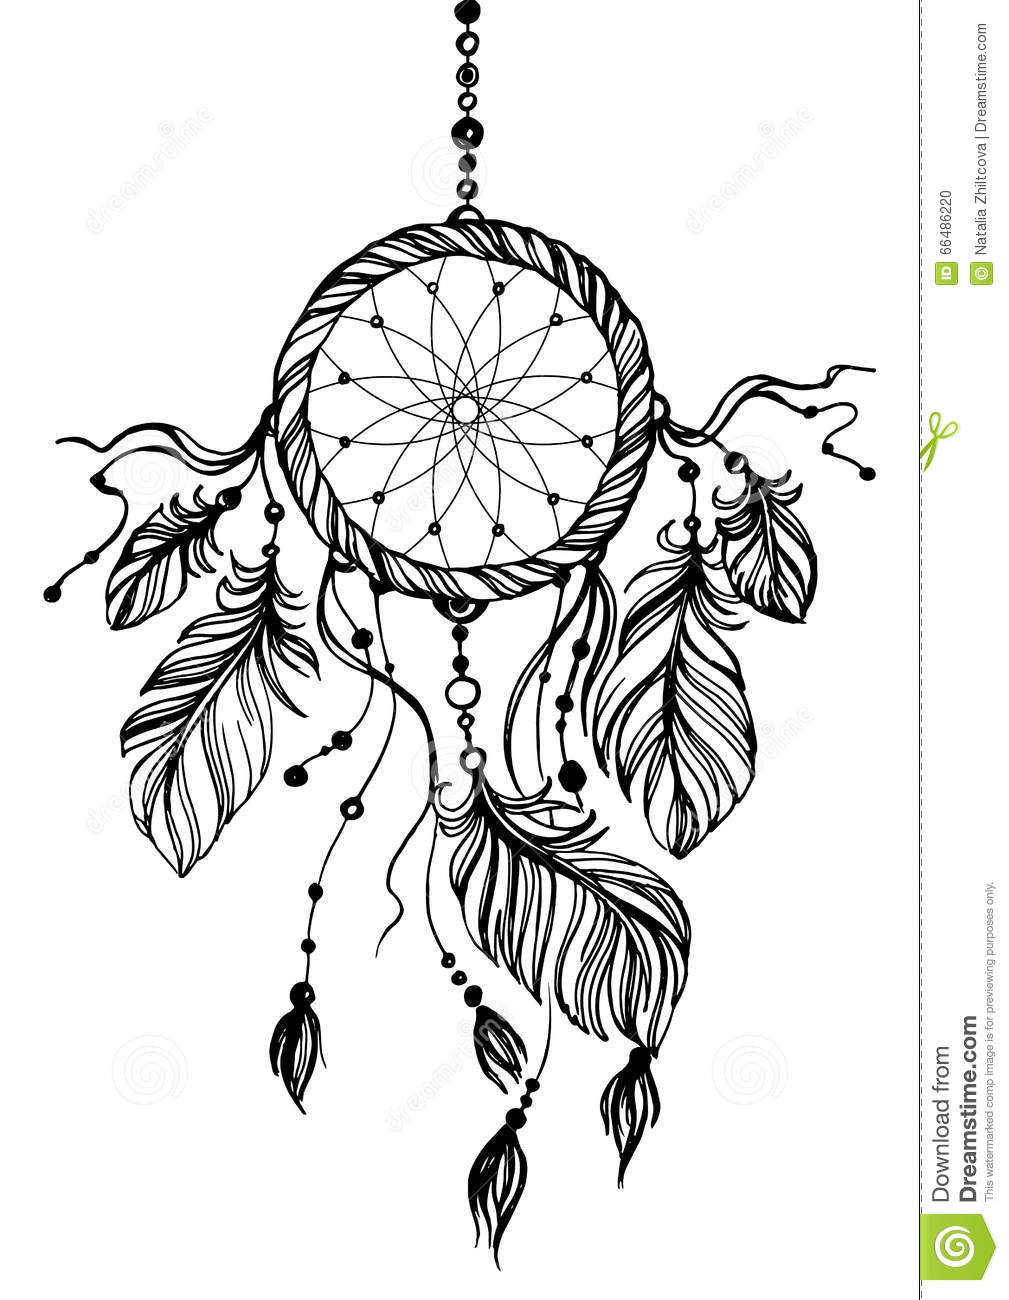 Dream Catcher Traditional Native American Indian Symbol Stock